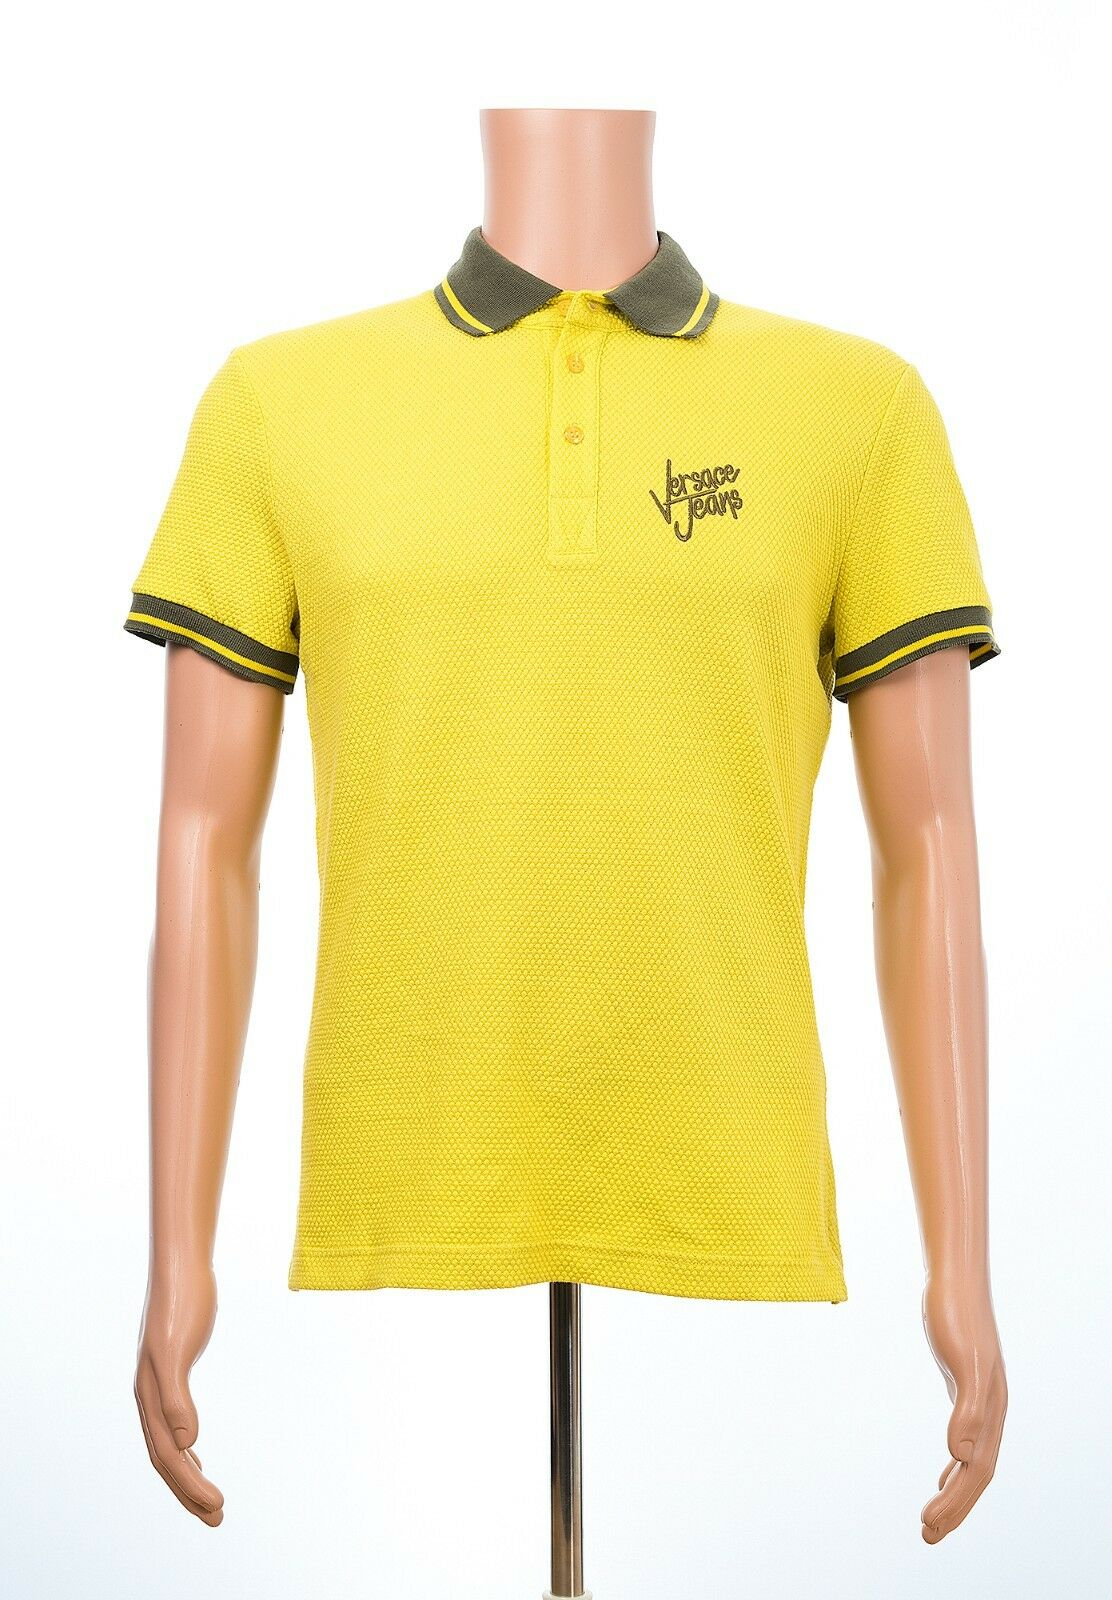 New Versace Jeans Jersey Honeycomb Yellow Polo Tee T-Shirt  sz M